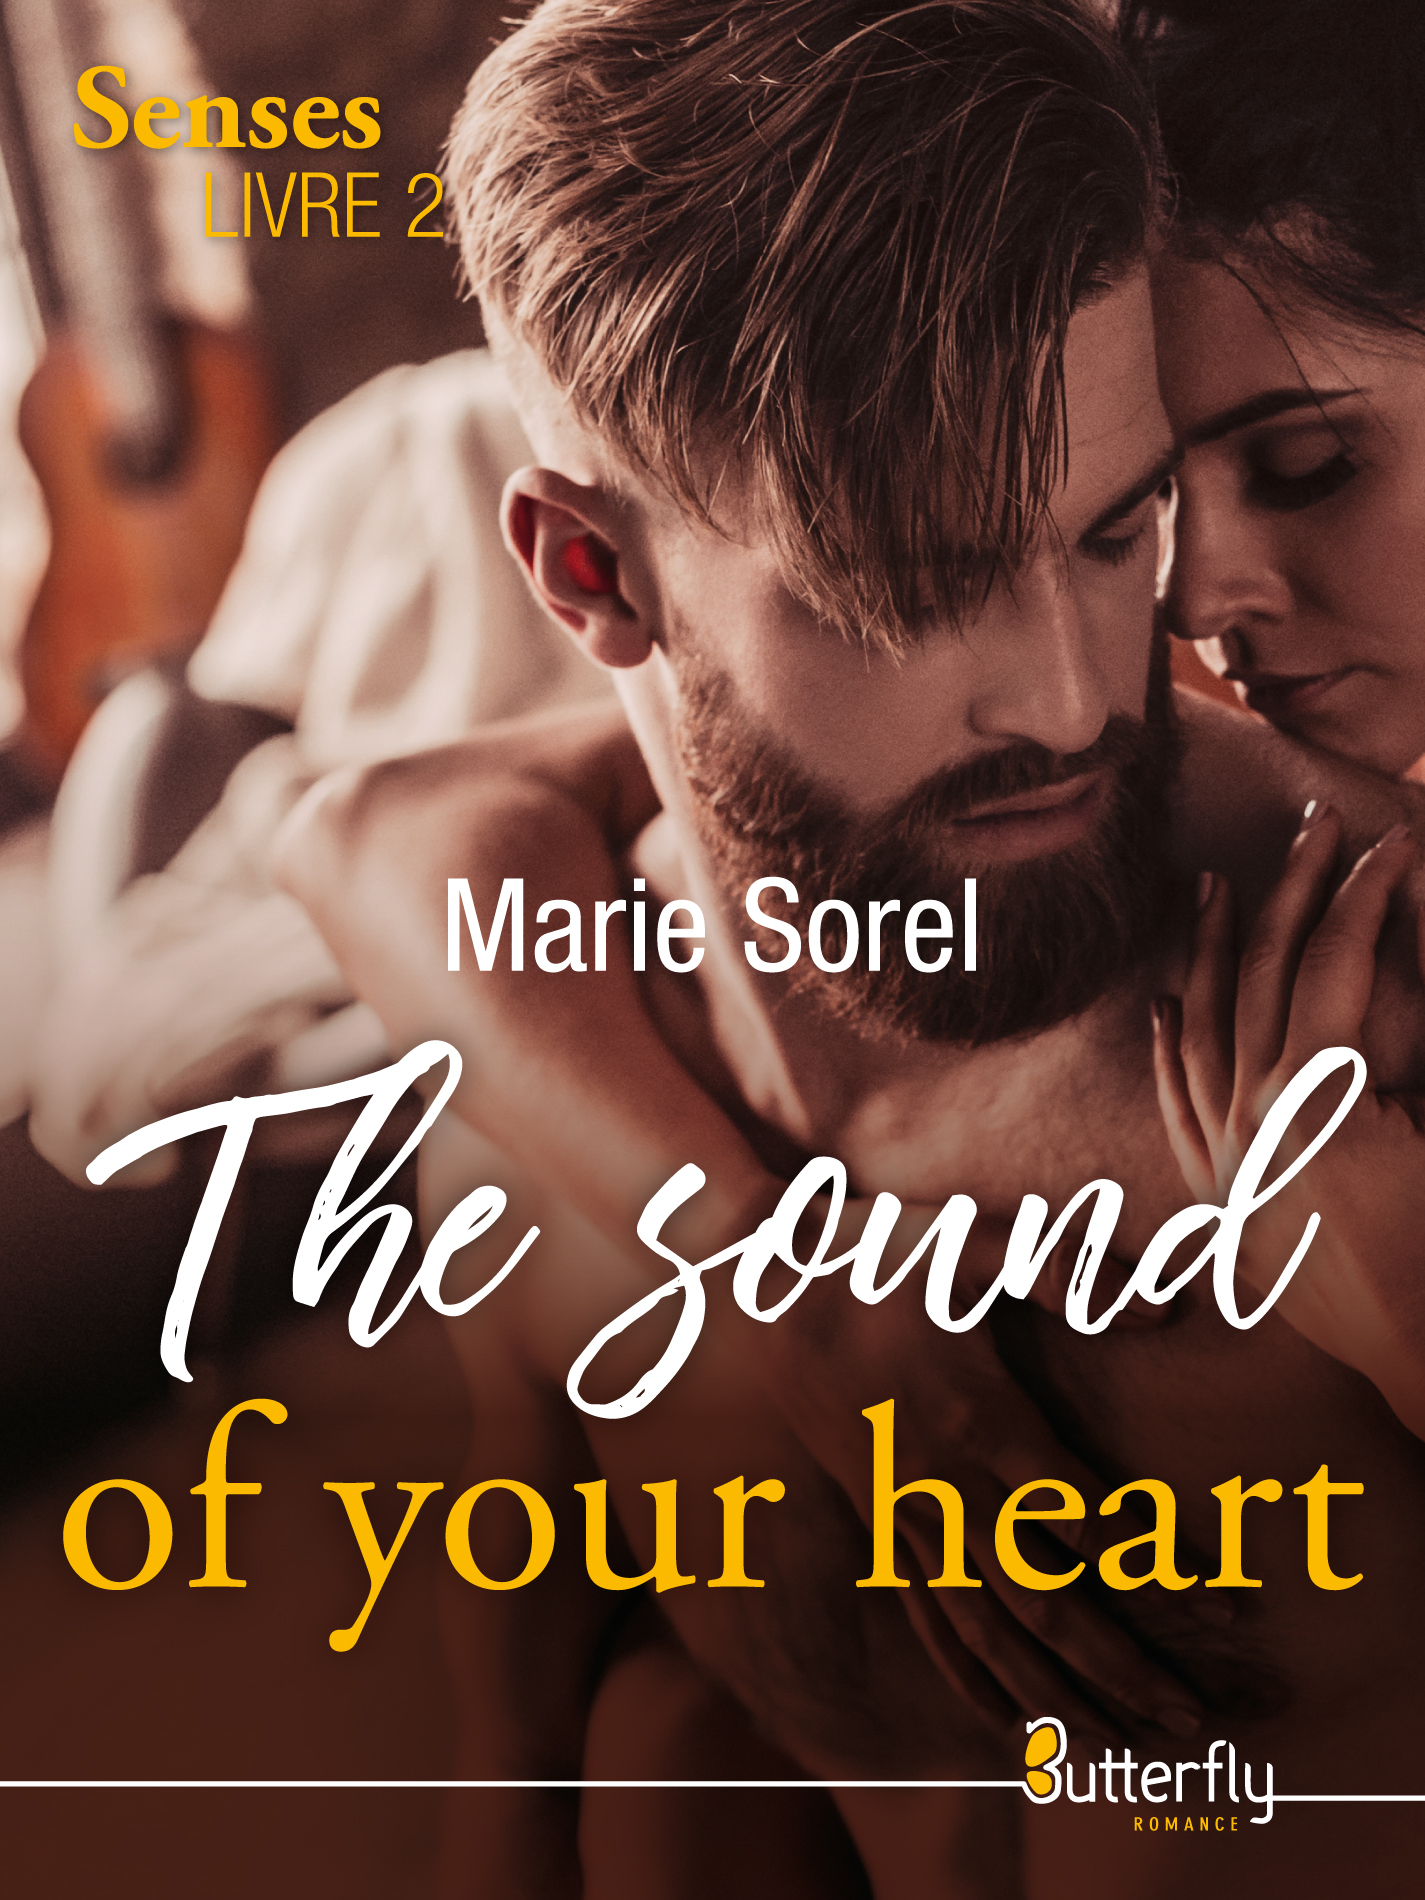 The sound of your heart